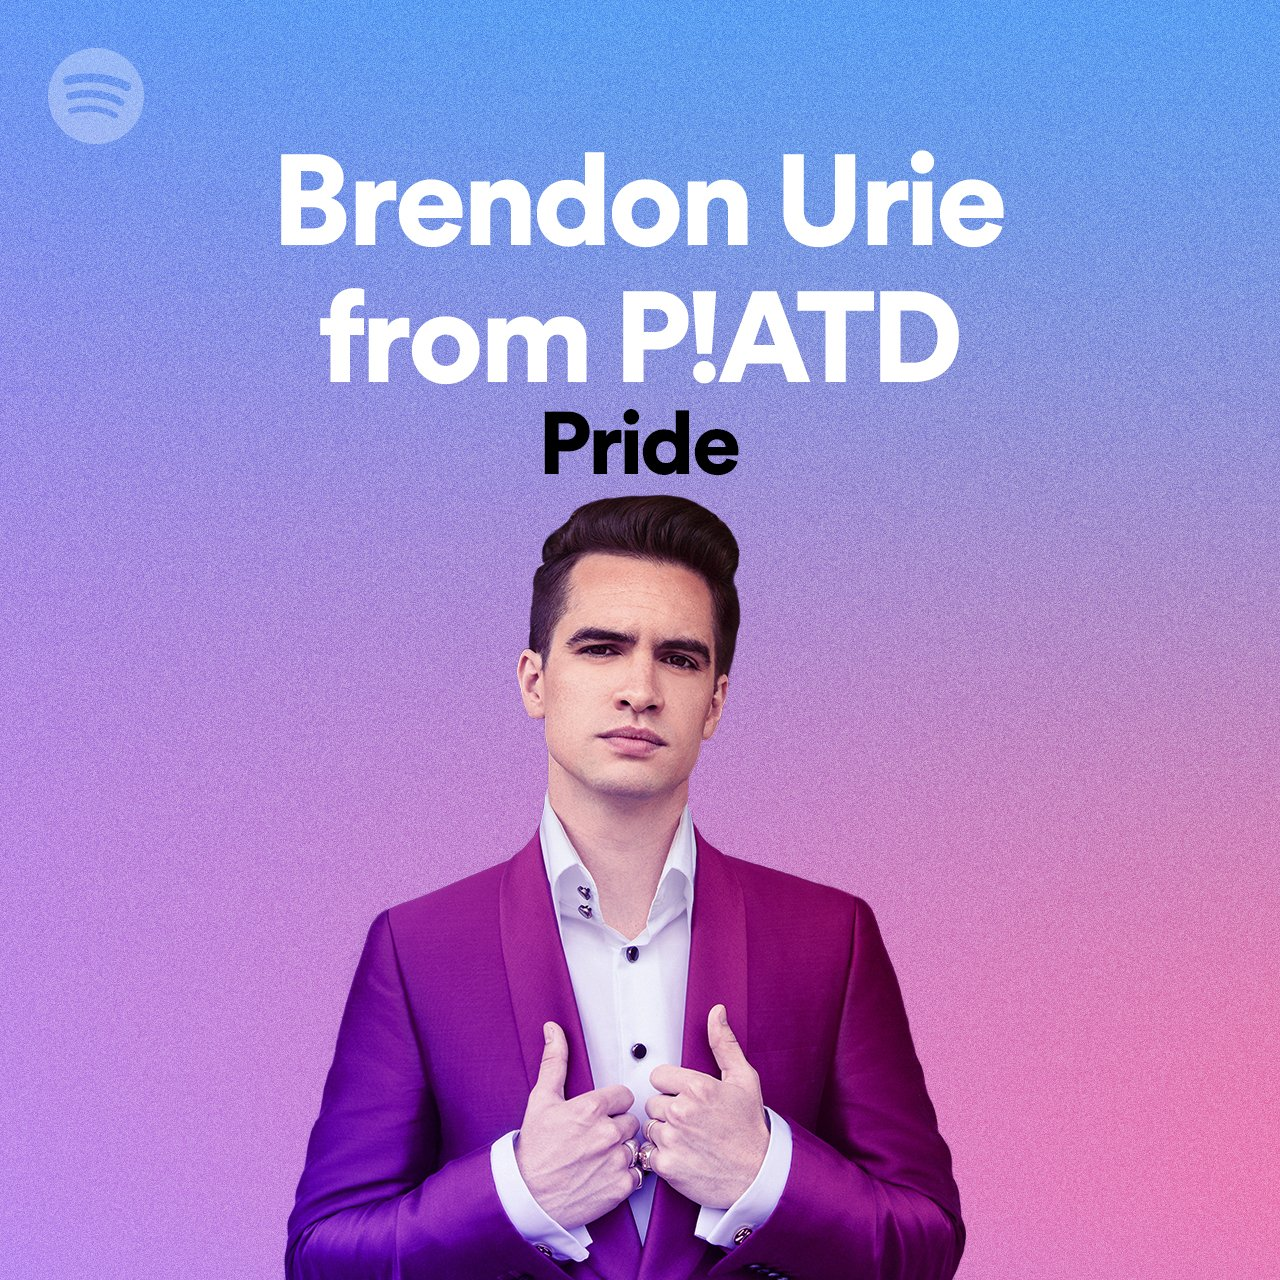 ��️‍�� Kick off #PrideMonth with a special playlist on @Spotify! https://t.co/Ye6s8LKjeD https://t.co/Lrrh4qBU9p